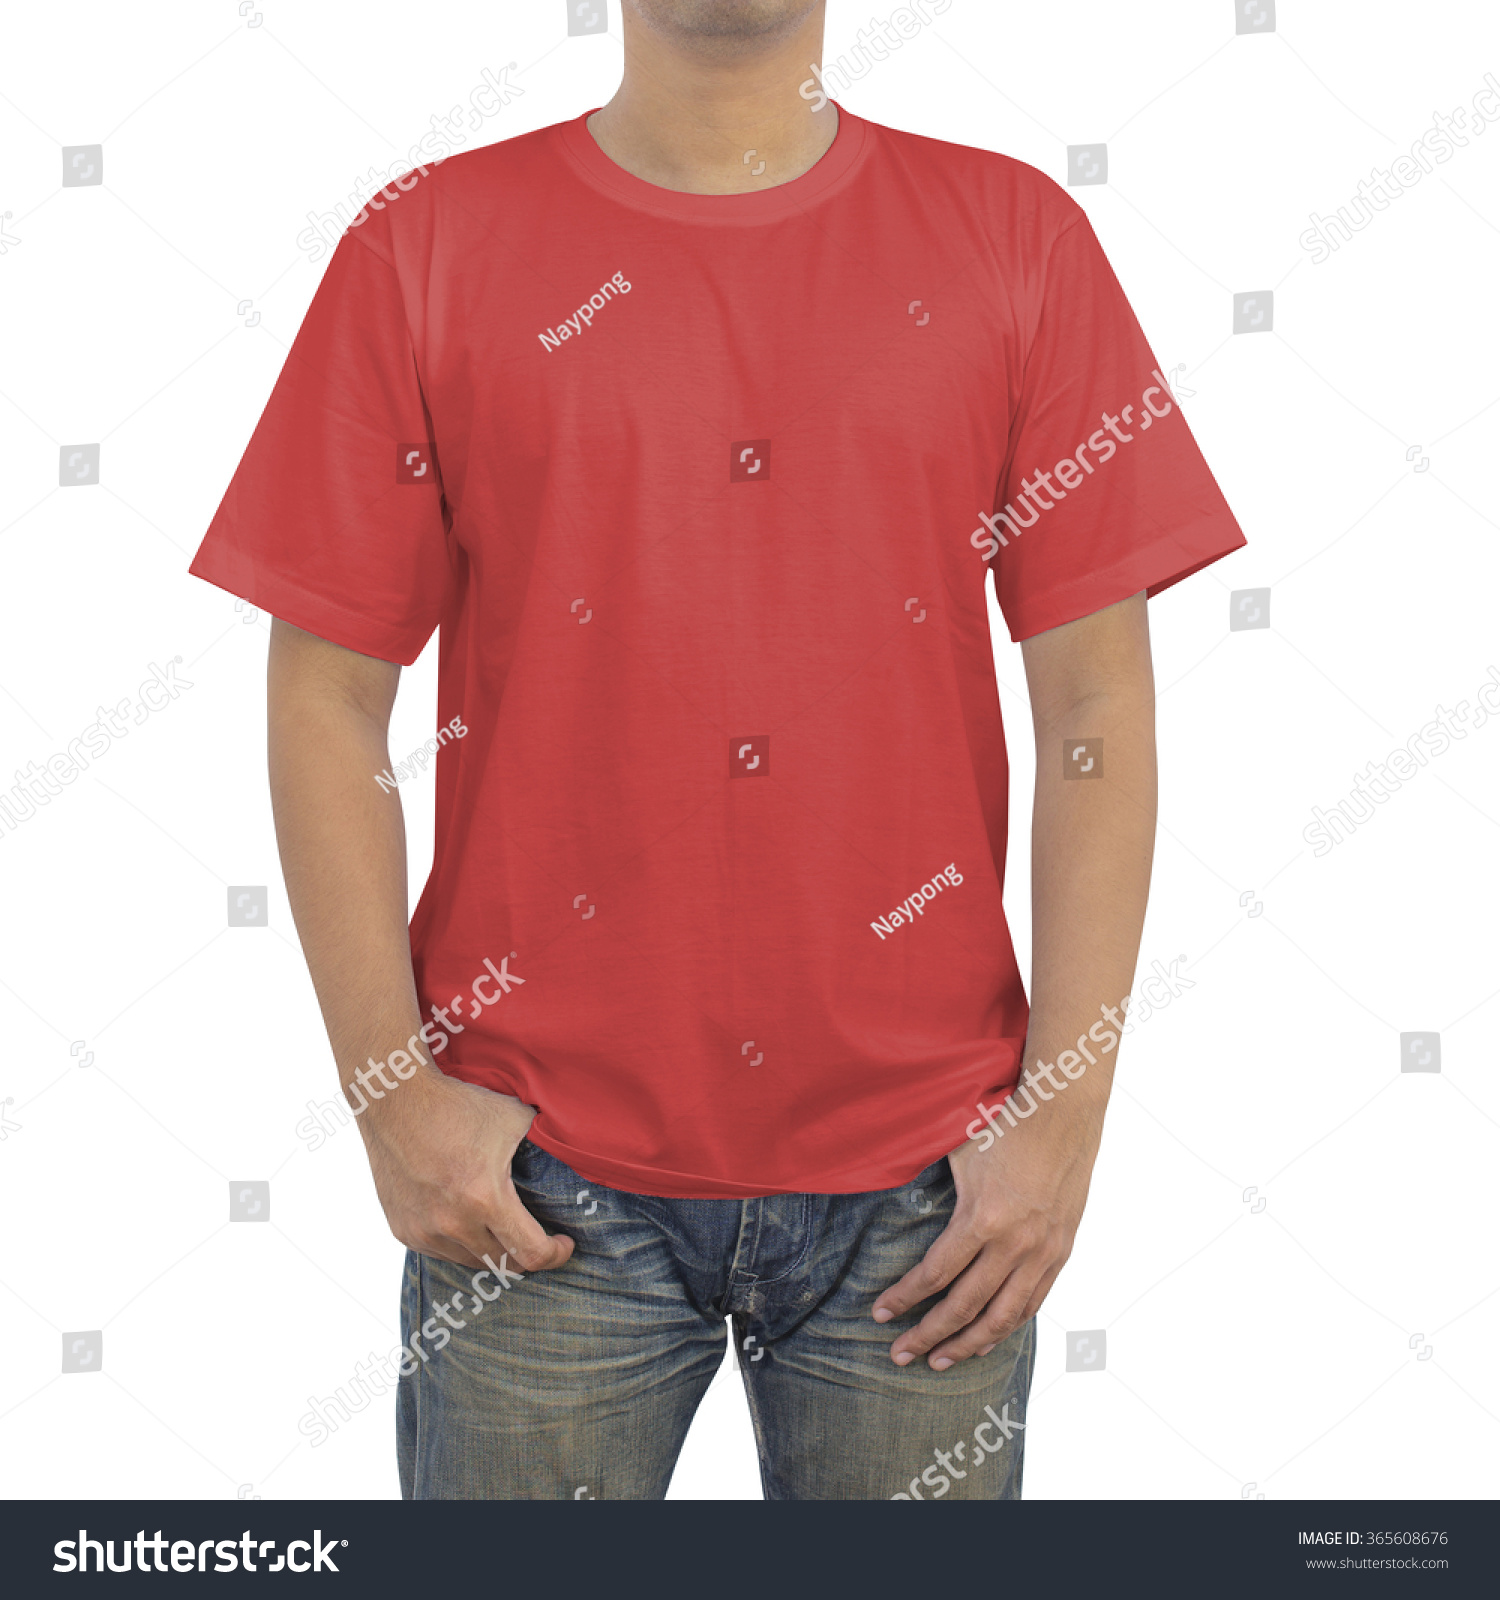 Men blue jeans red tshirt on stock photo 365608676 for Red and blue t shirt